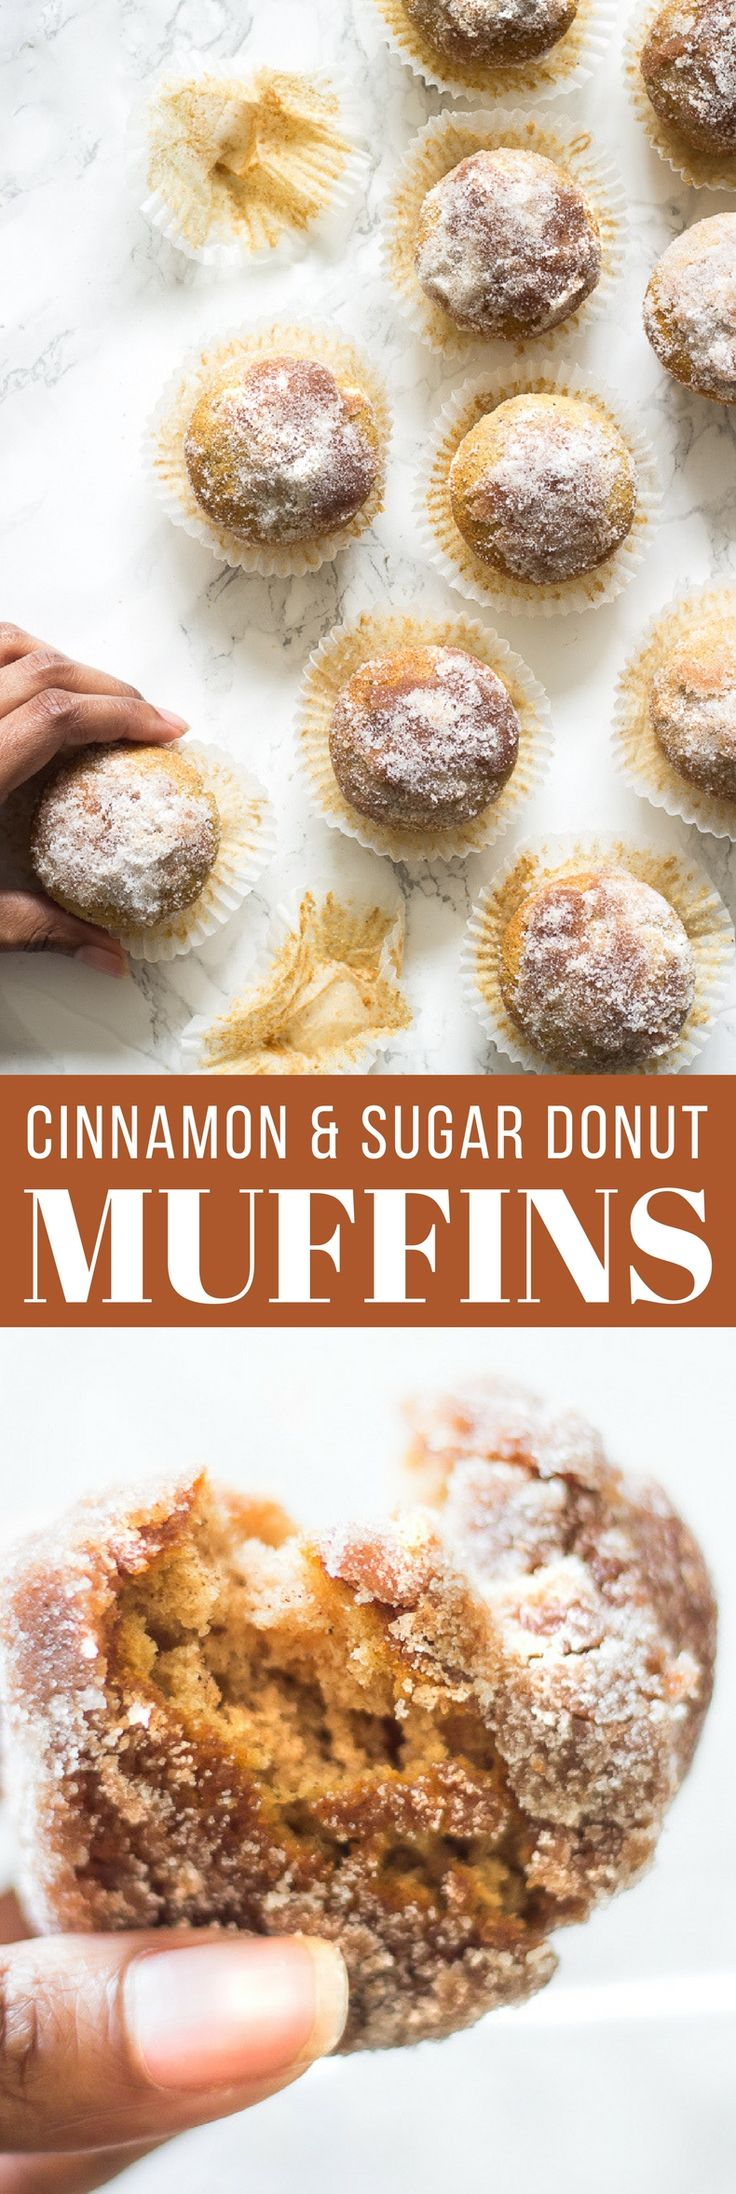 Simple cinnamon and sugar donut muffins are great when you are craving donuts. These hot muffin donuts are brushed with melted butter then swirled in a cinnamon and sugar mixture then coated in only sugar.